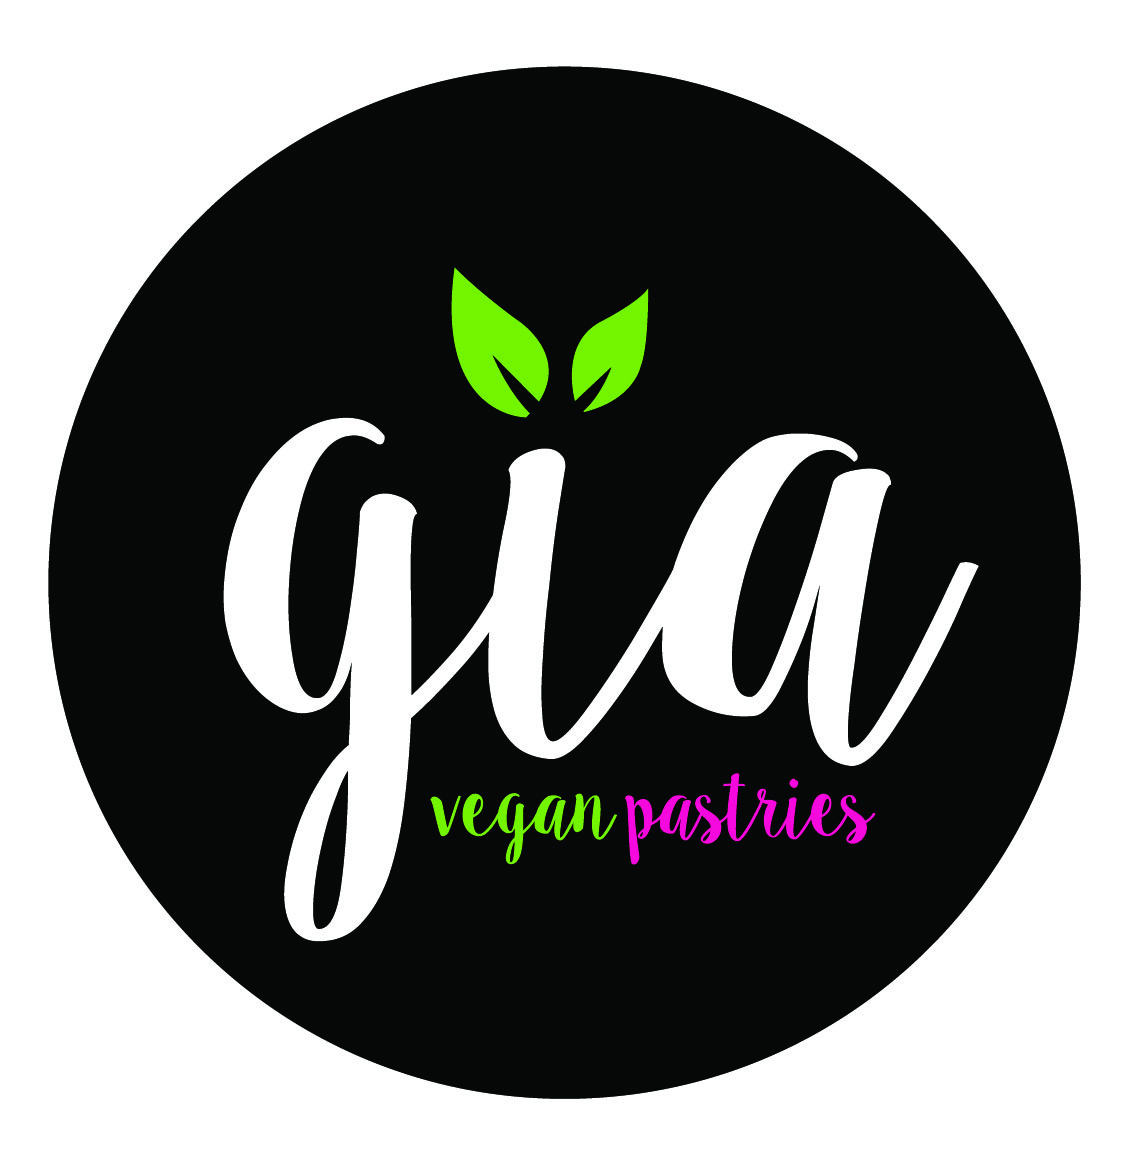 Gia The Pastry Shop logo